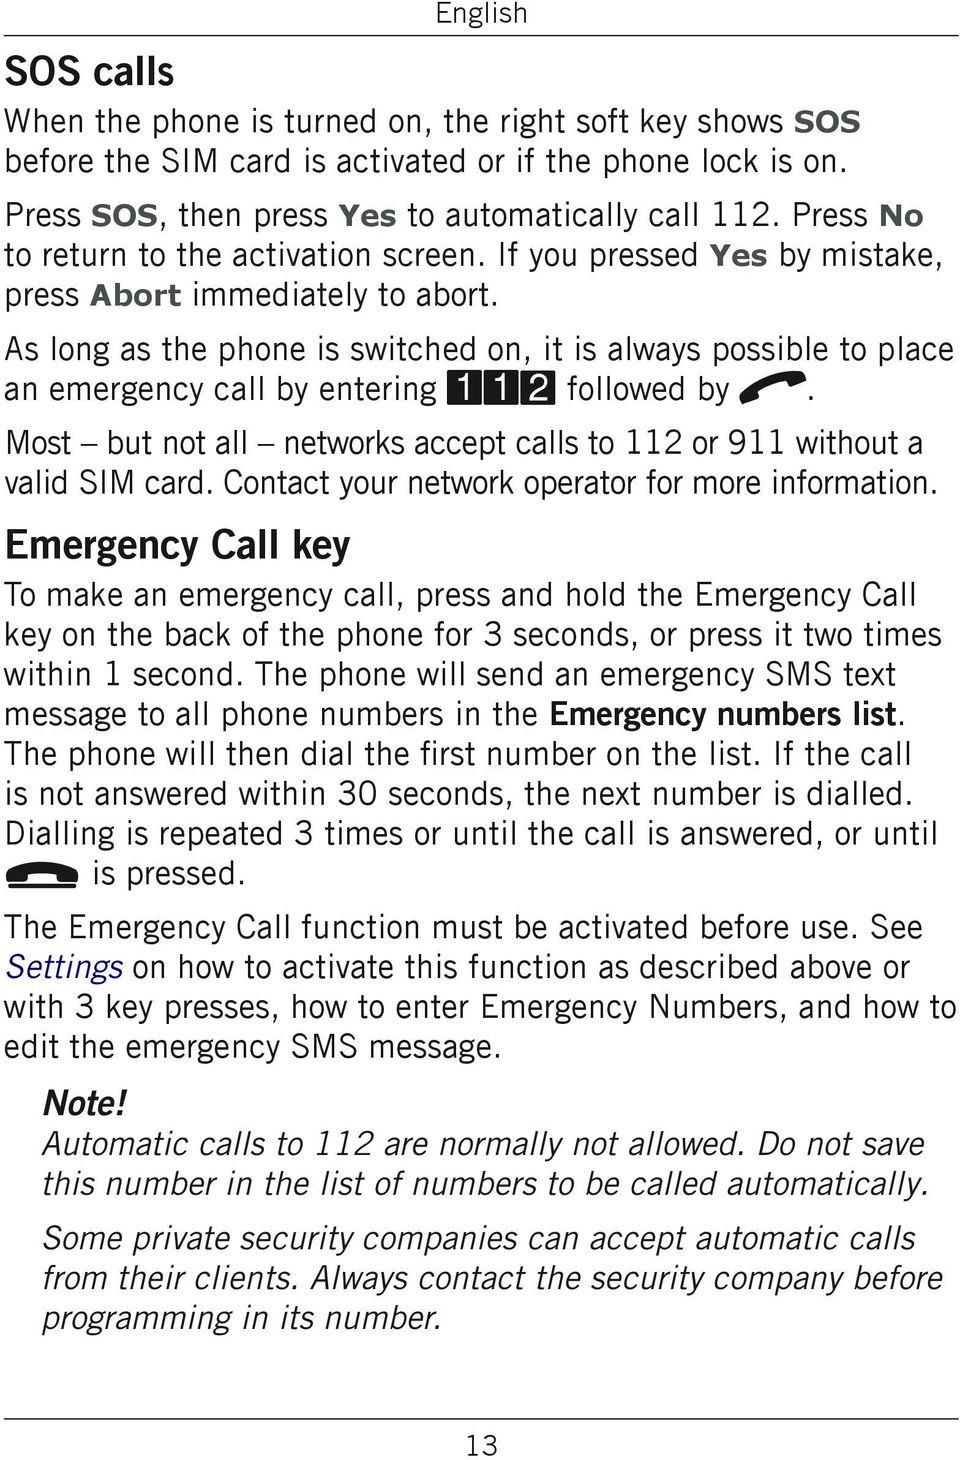 As long as the phone is switched on, it is always possible to place an emergency call by entering 112 followed by q. Most but not all networks accept calls to 112 or 911 without a valid SIM card.